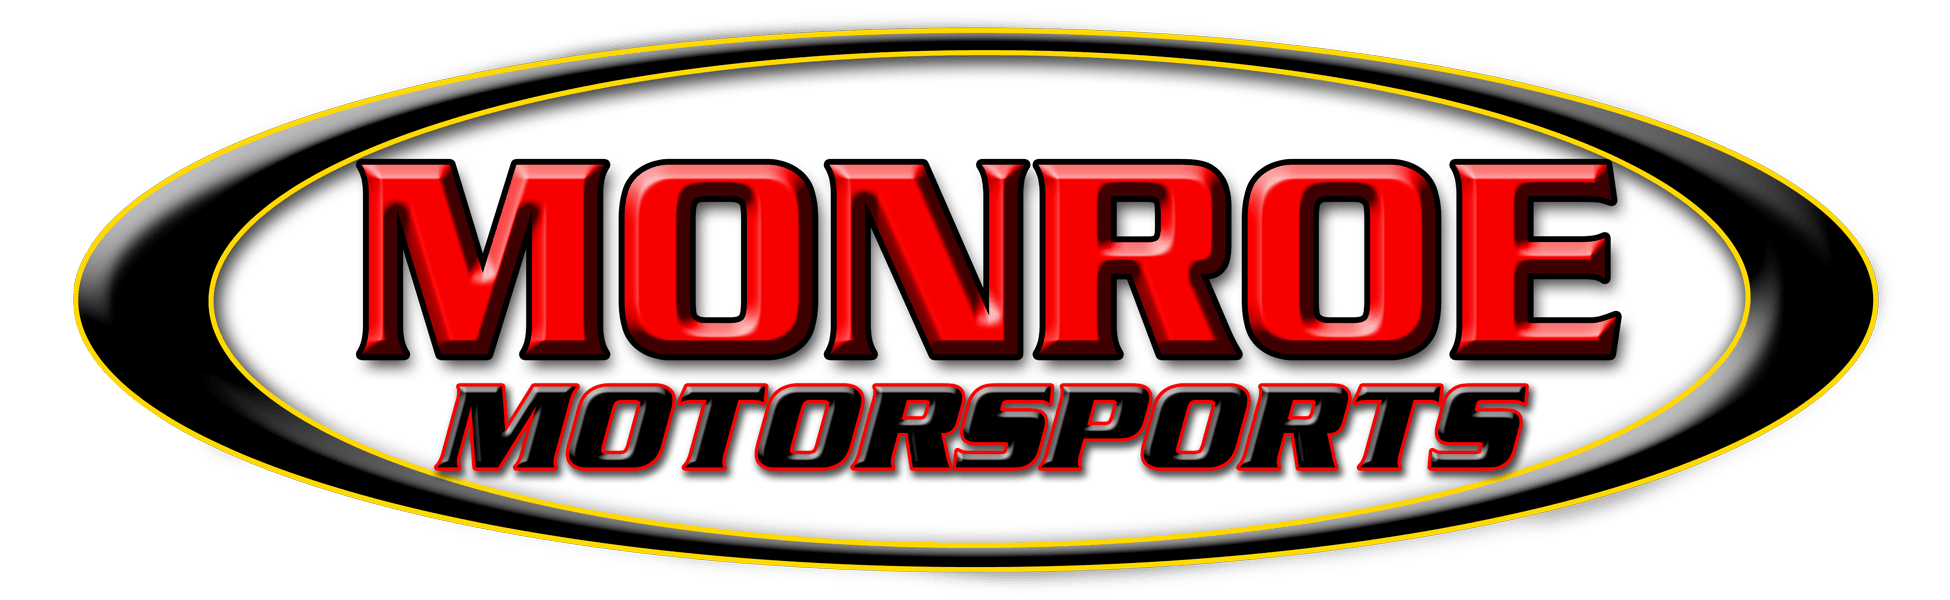 Monroe Motorsports, located in Monroe, Michigan